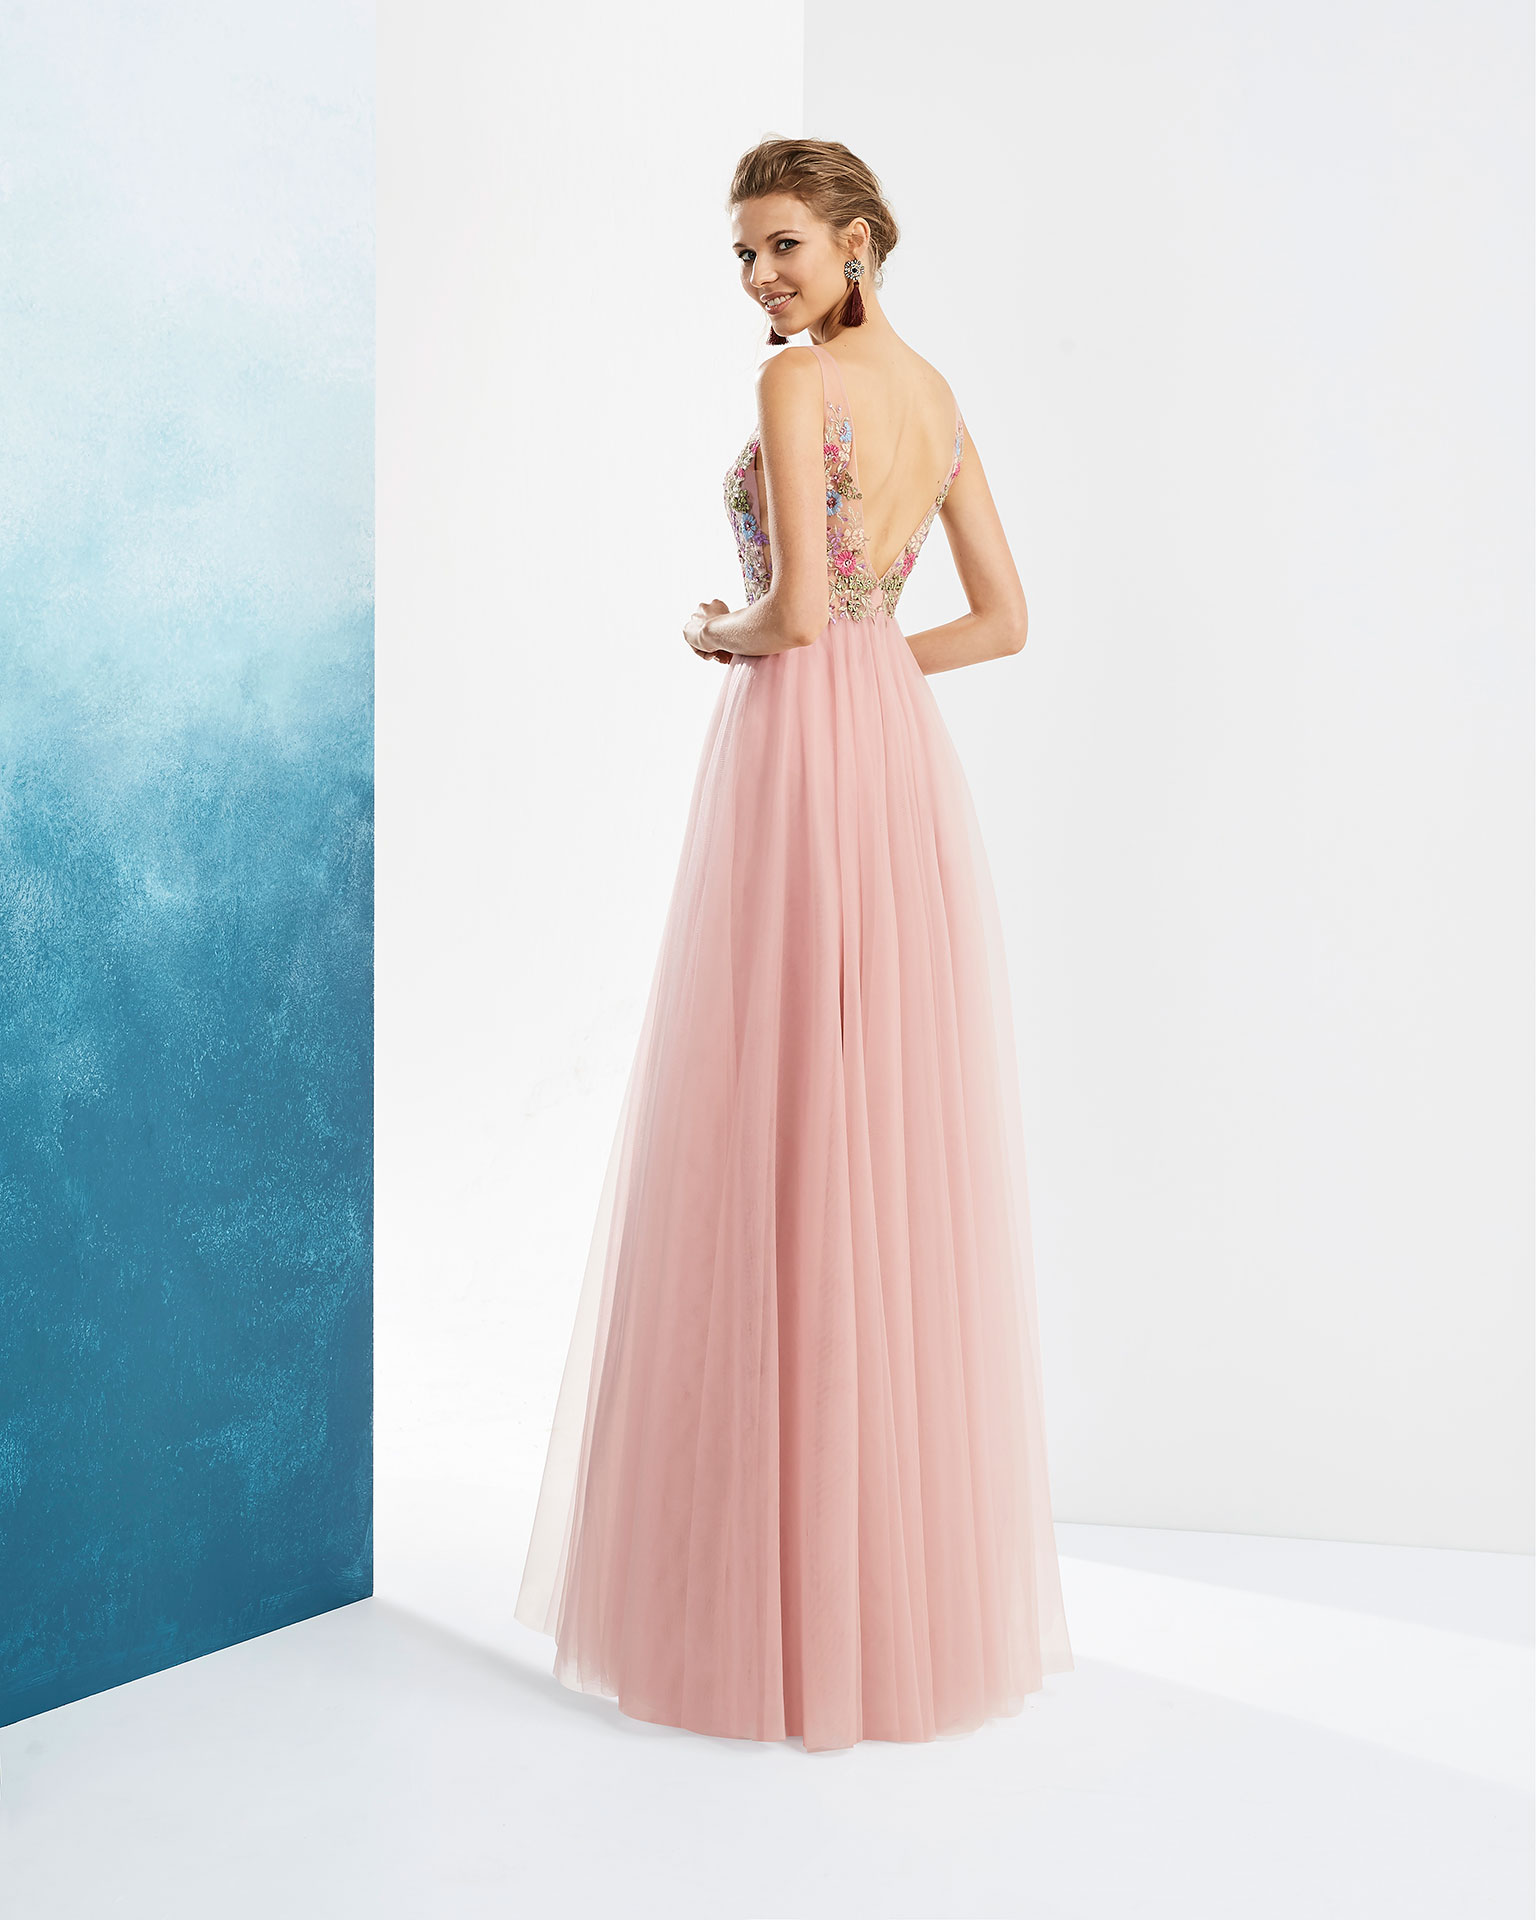 Long beaded embroidered tulle cocktail dress. With deep-plunge neckline and V-back. Available in lilac, dusty pink and black. 2019 FIESTA AIRE BARCELONA Collection.